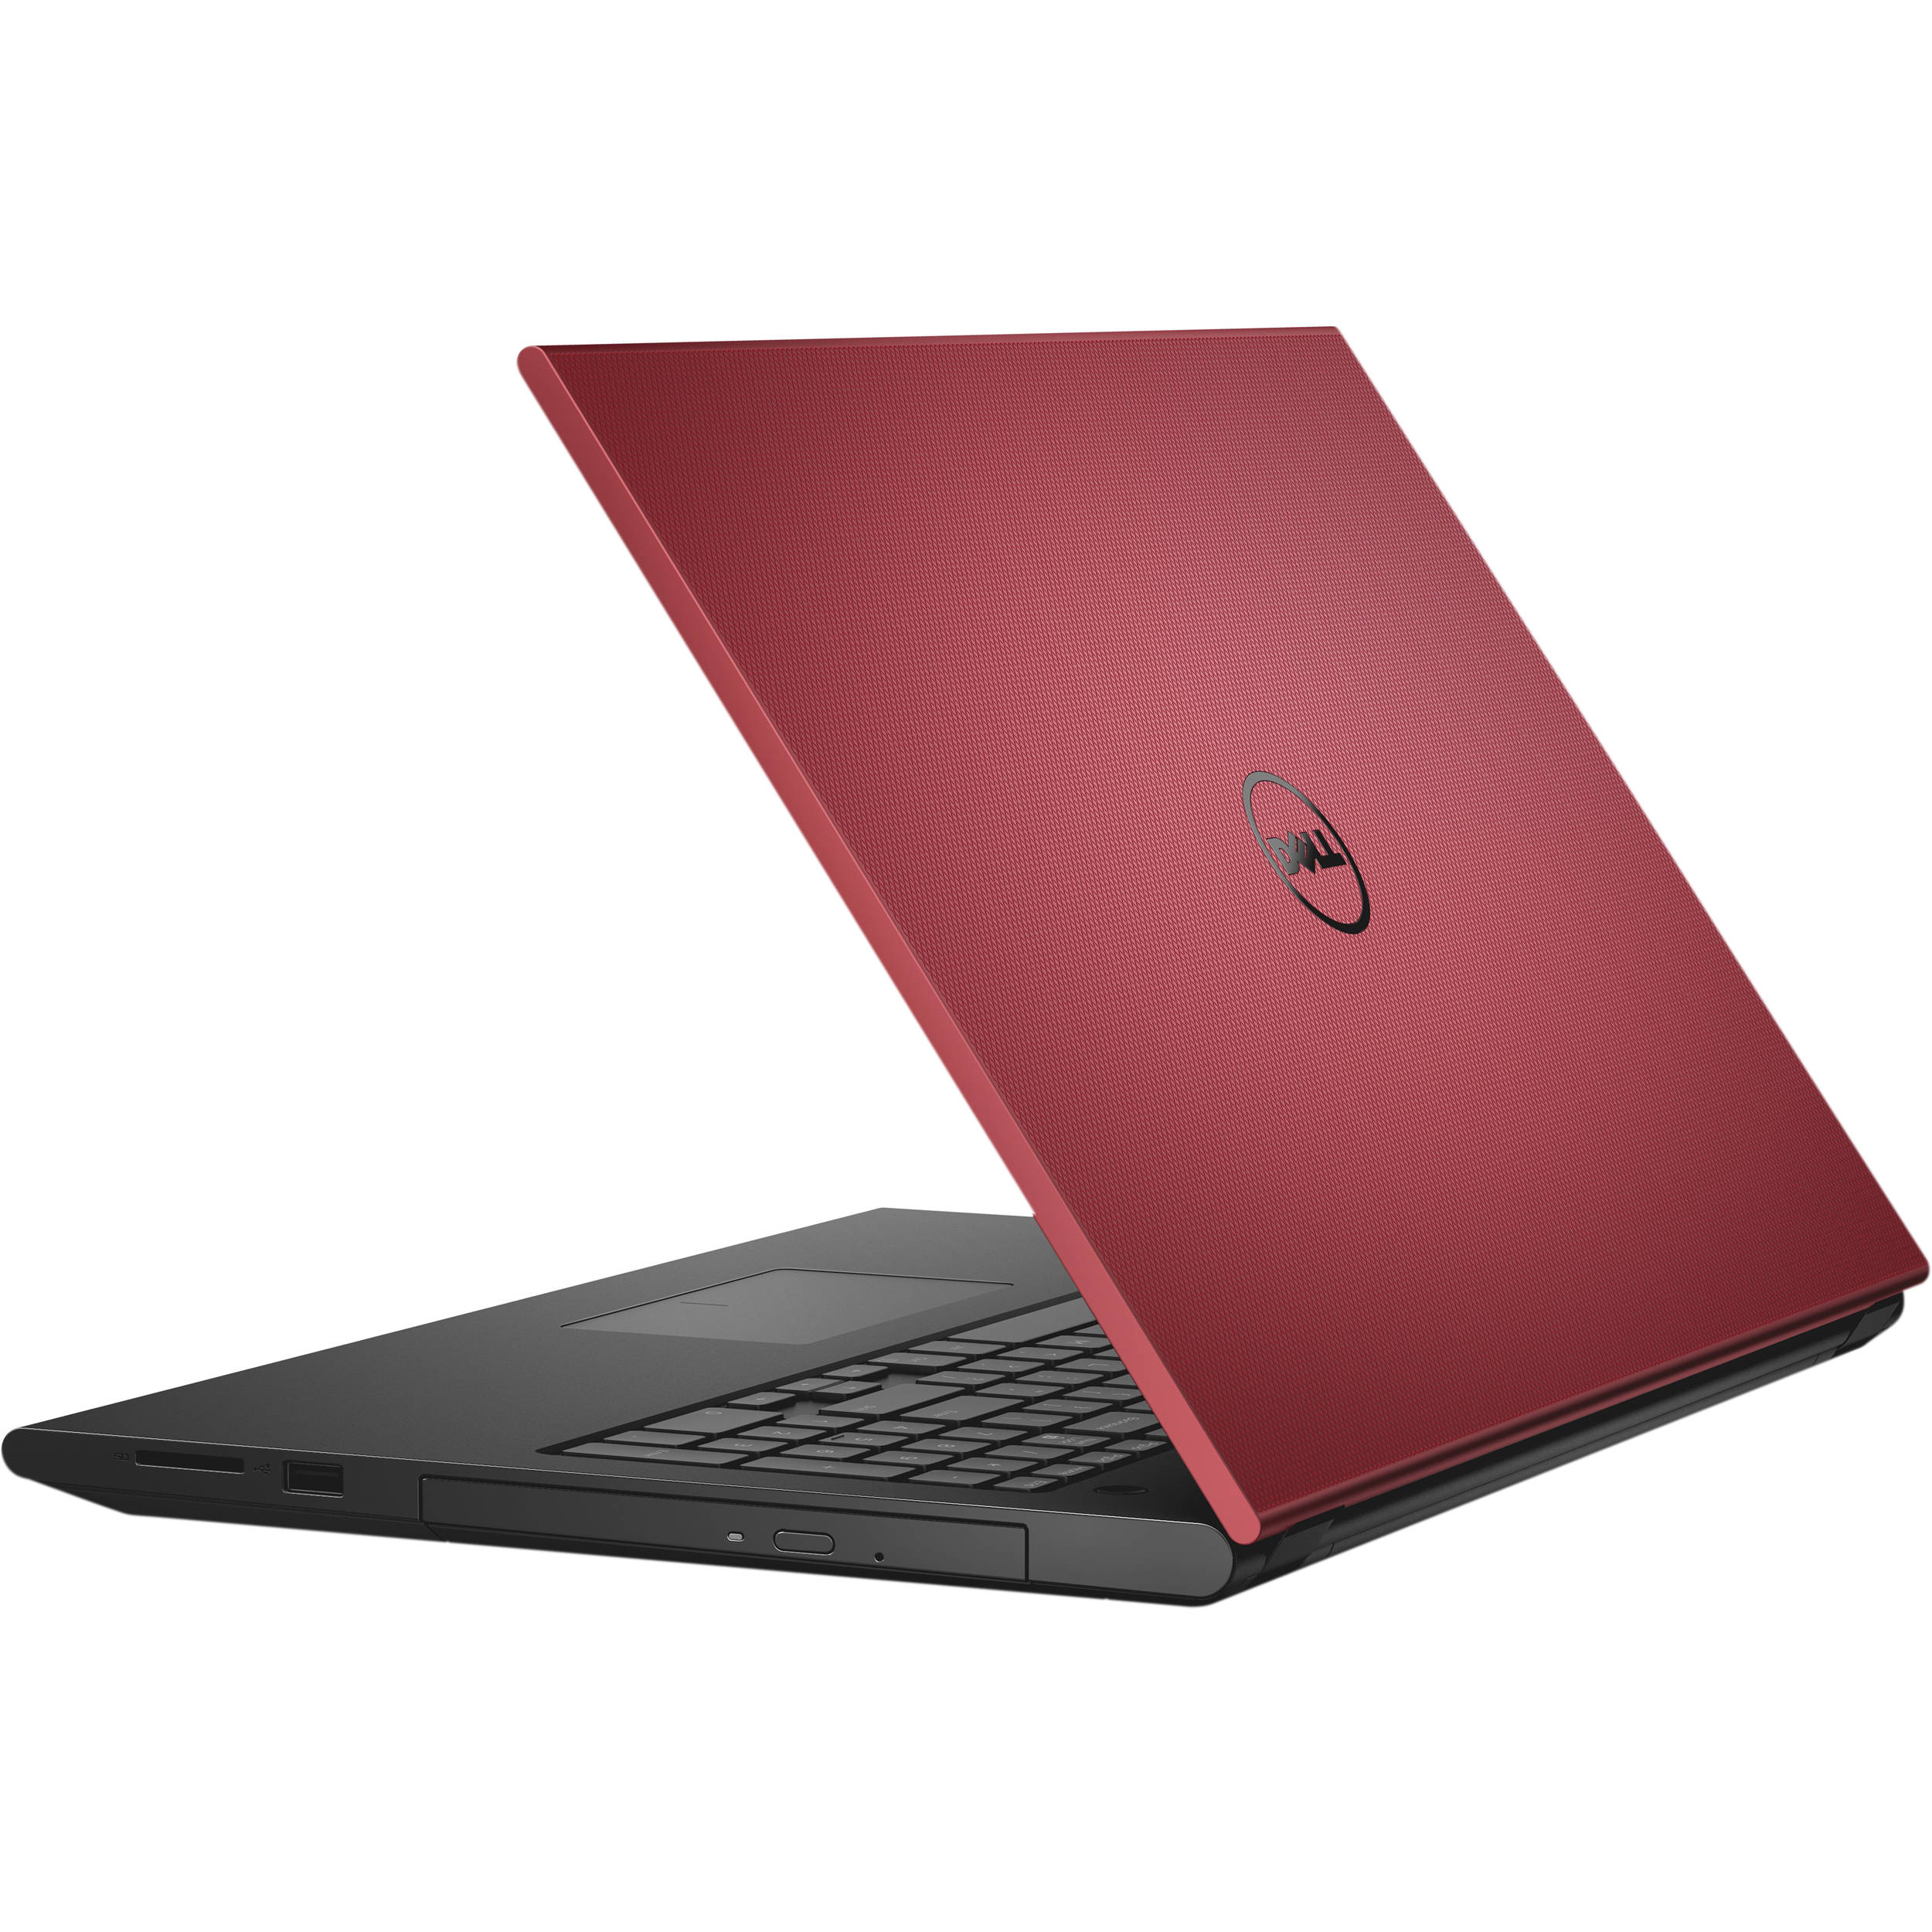 dell inspiron 15 drivers 3000 series